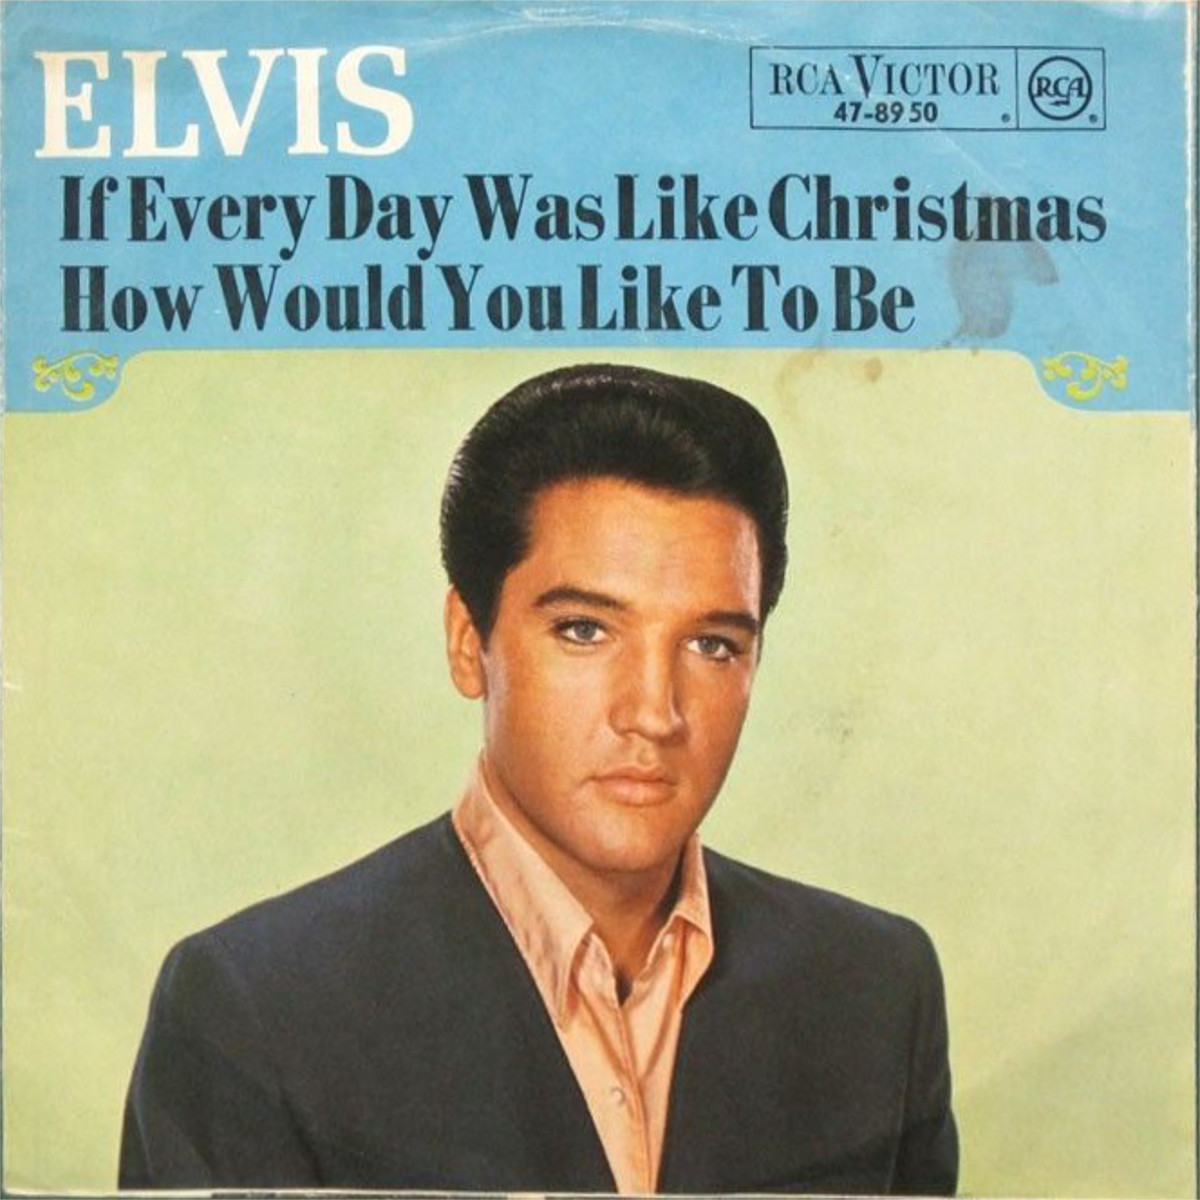 If Everyday Was Like Christmas / How Would You Like To Be 47-8950a6dxfu